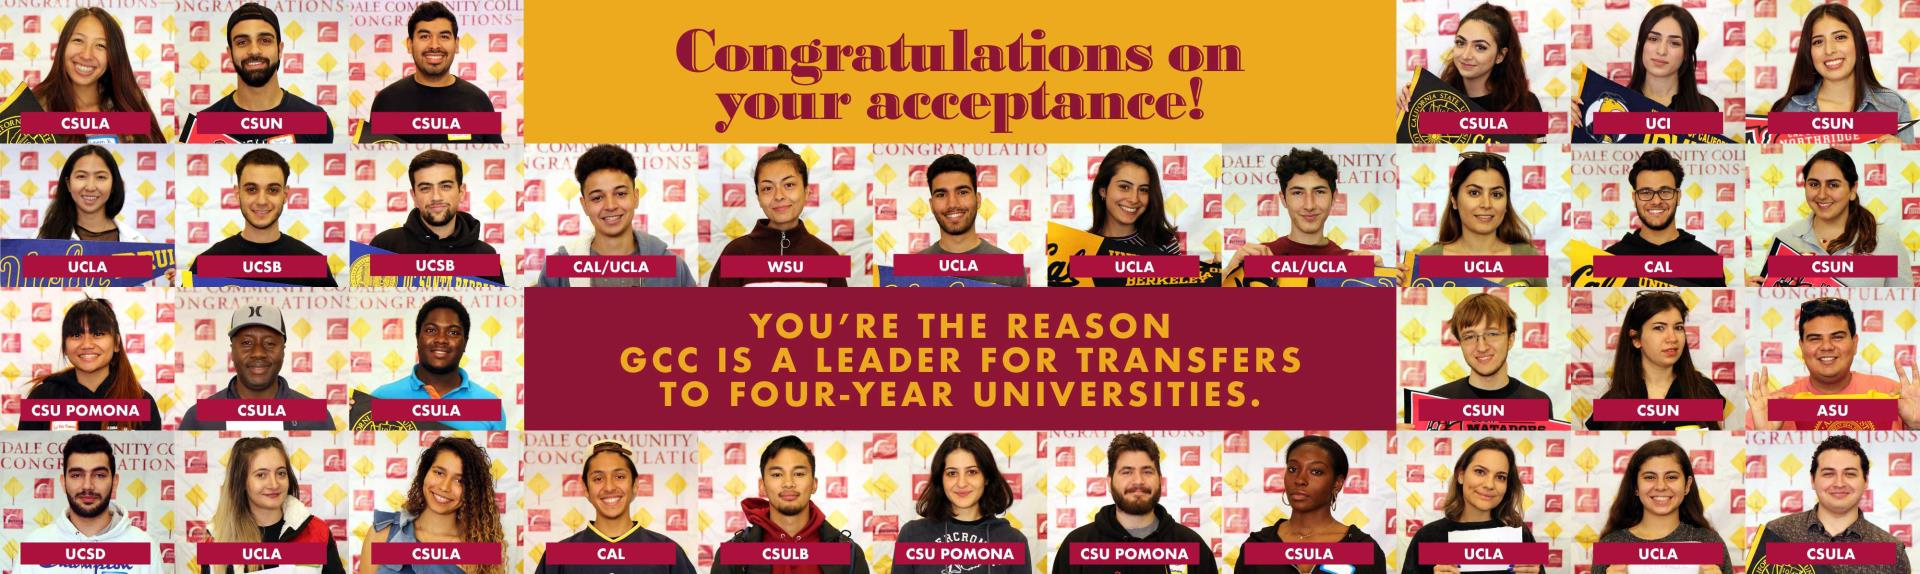 Congratulations on your acceptance Transfer Students!